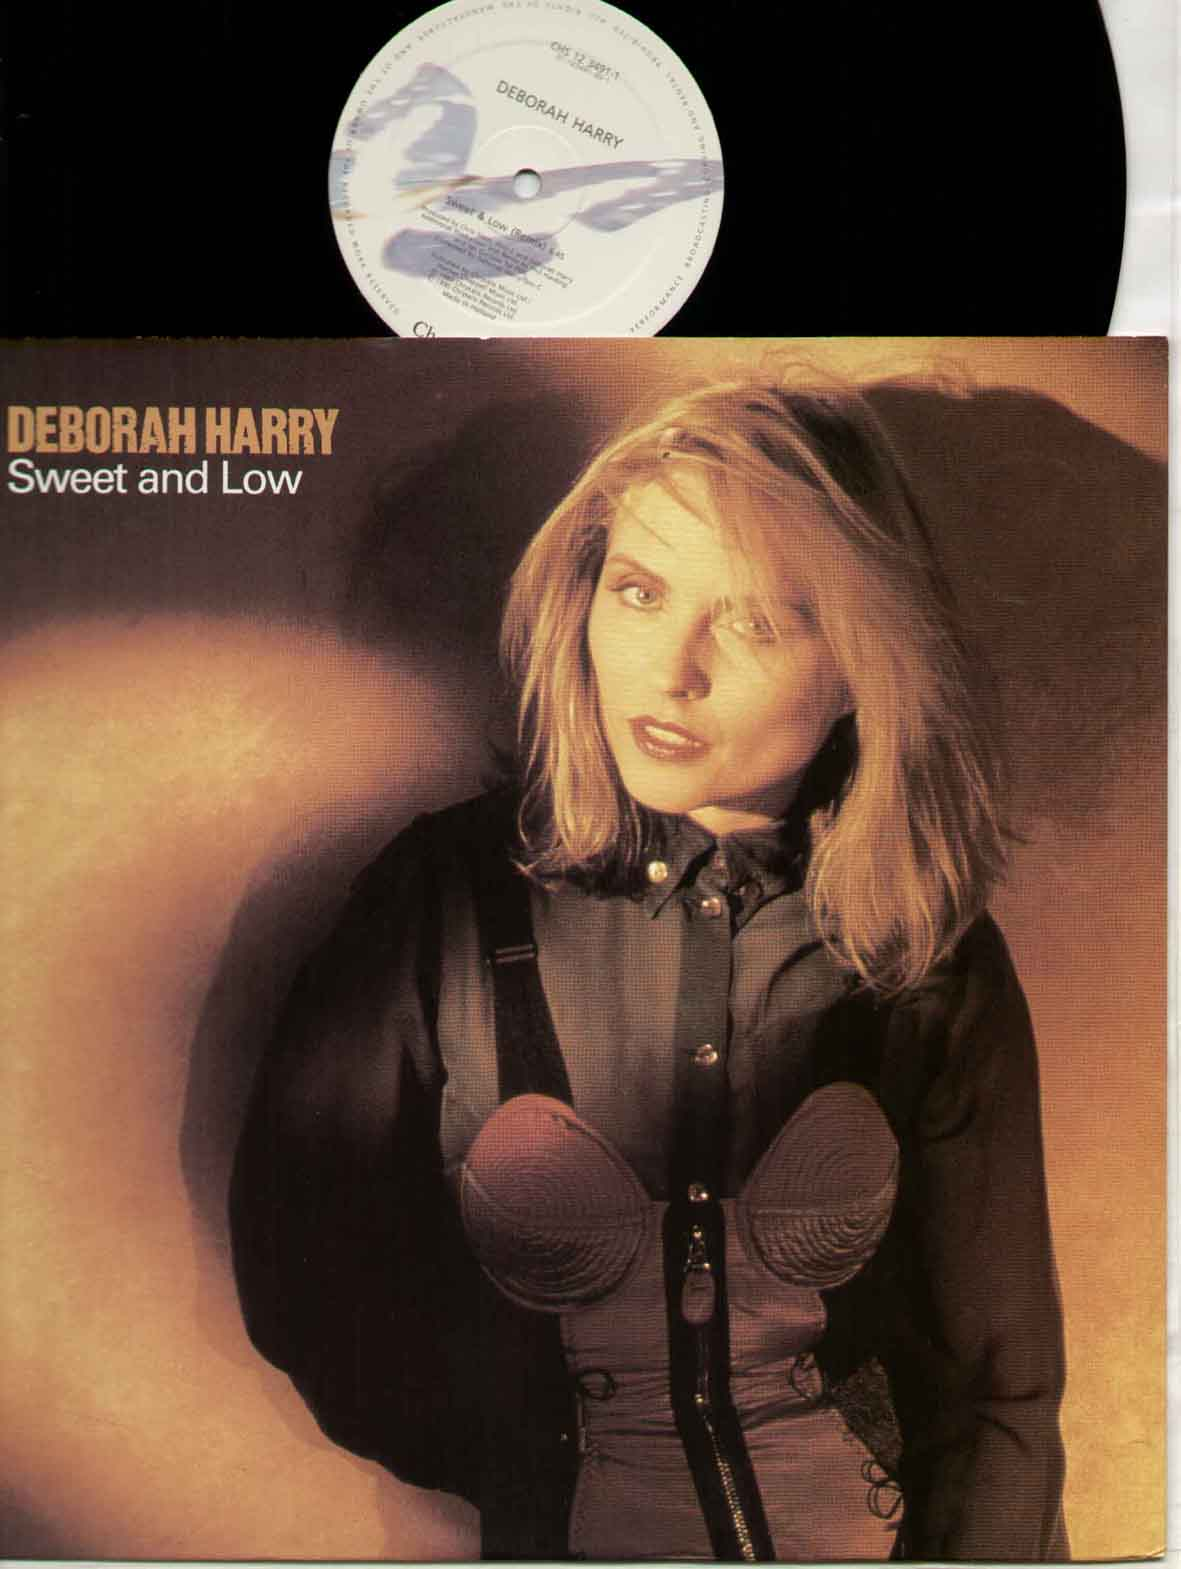 "BLONDIE/DEBORAH HARRY - Sweet And Low Phil Harding 12"" Mix/sweet And Low Phil Harding Dub/lovelight/sweet And Low Sweet"